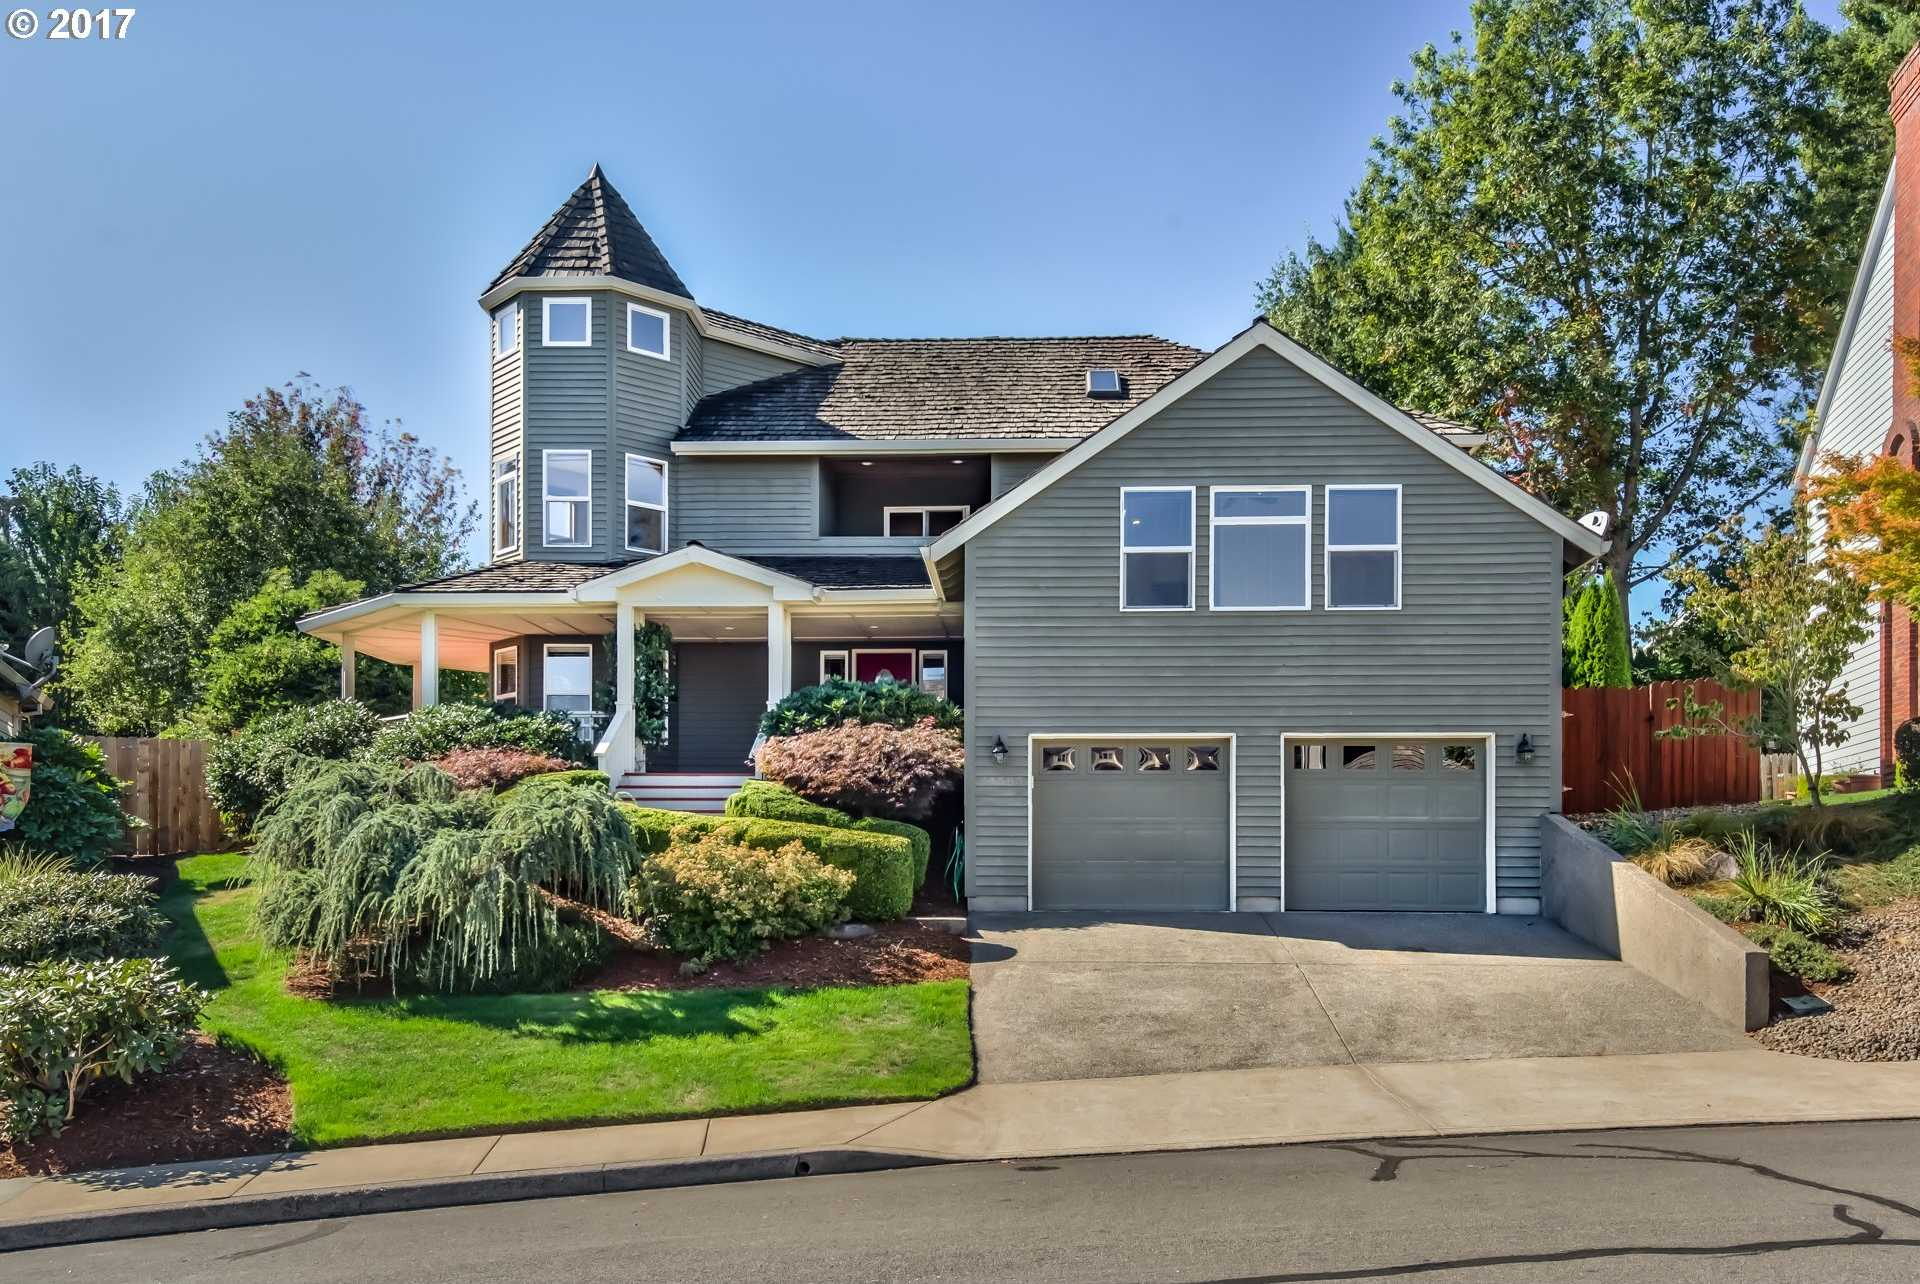 $574,000 - 4Br/3Ba -  for Sale in Three Mountain Estates, Tigard